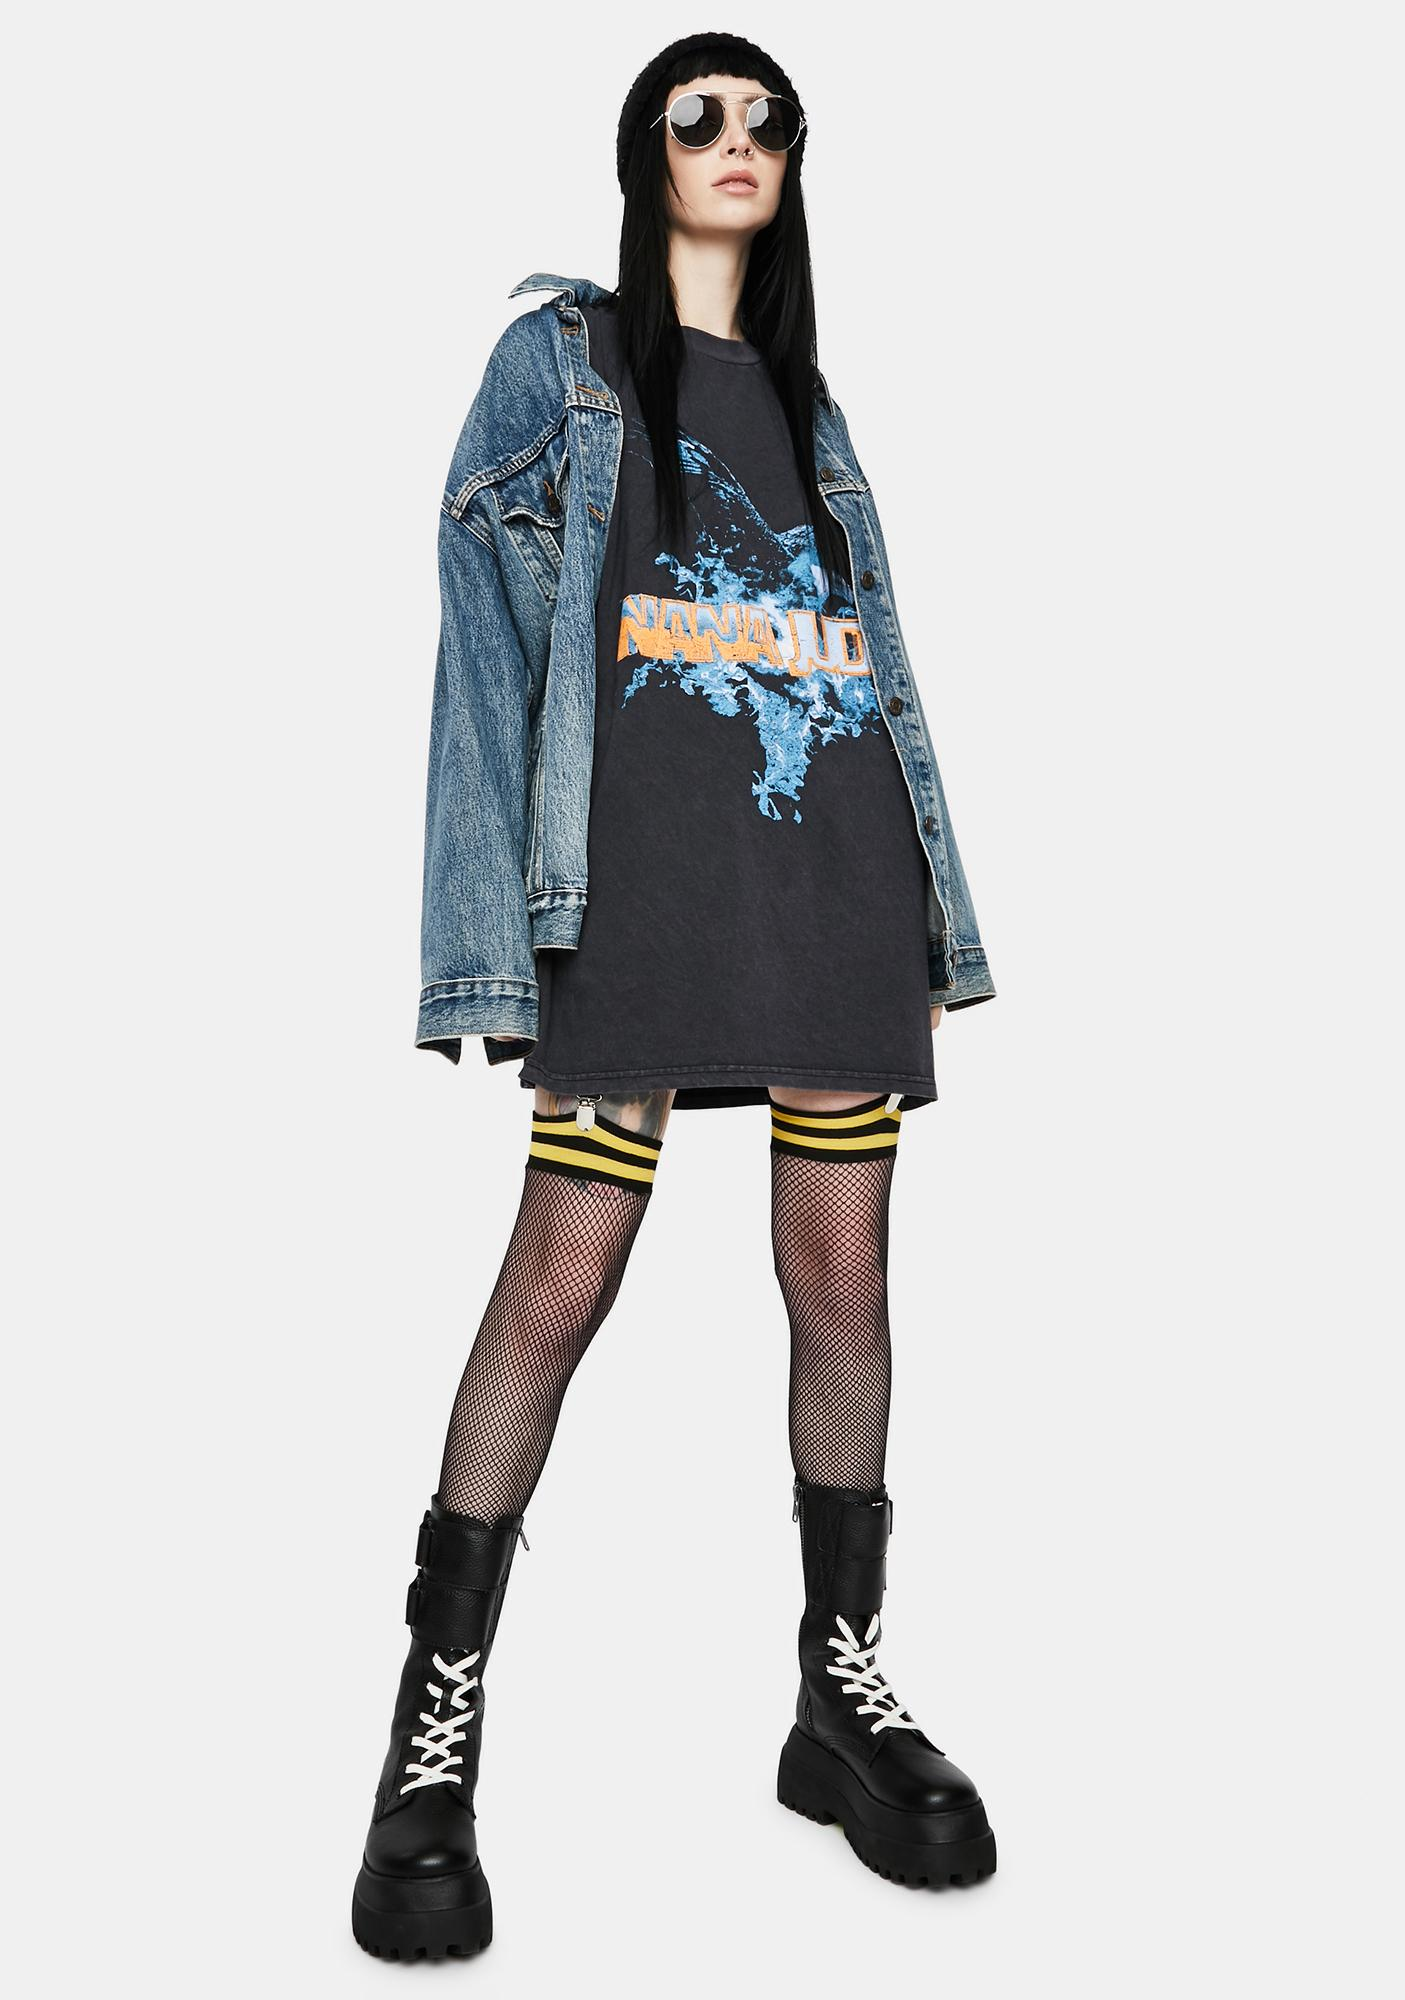 Nana Judy Fly High Graphic Tee Dress